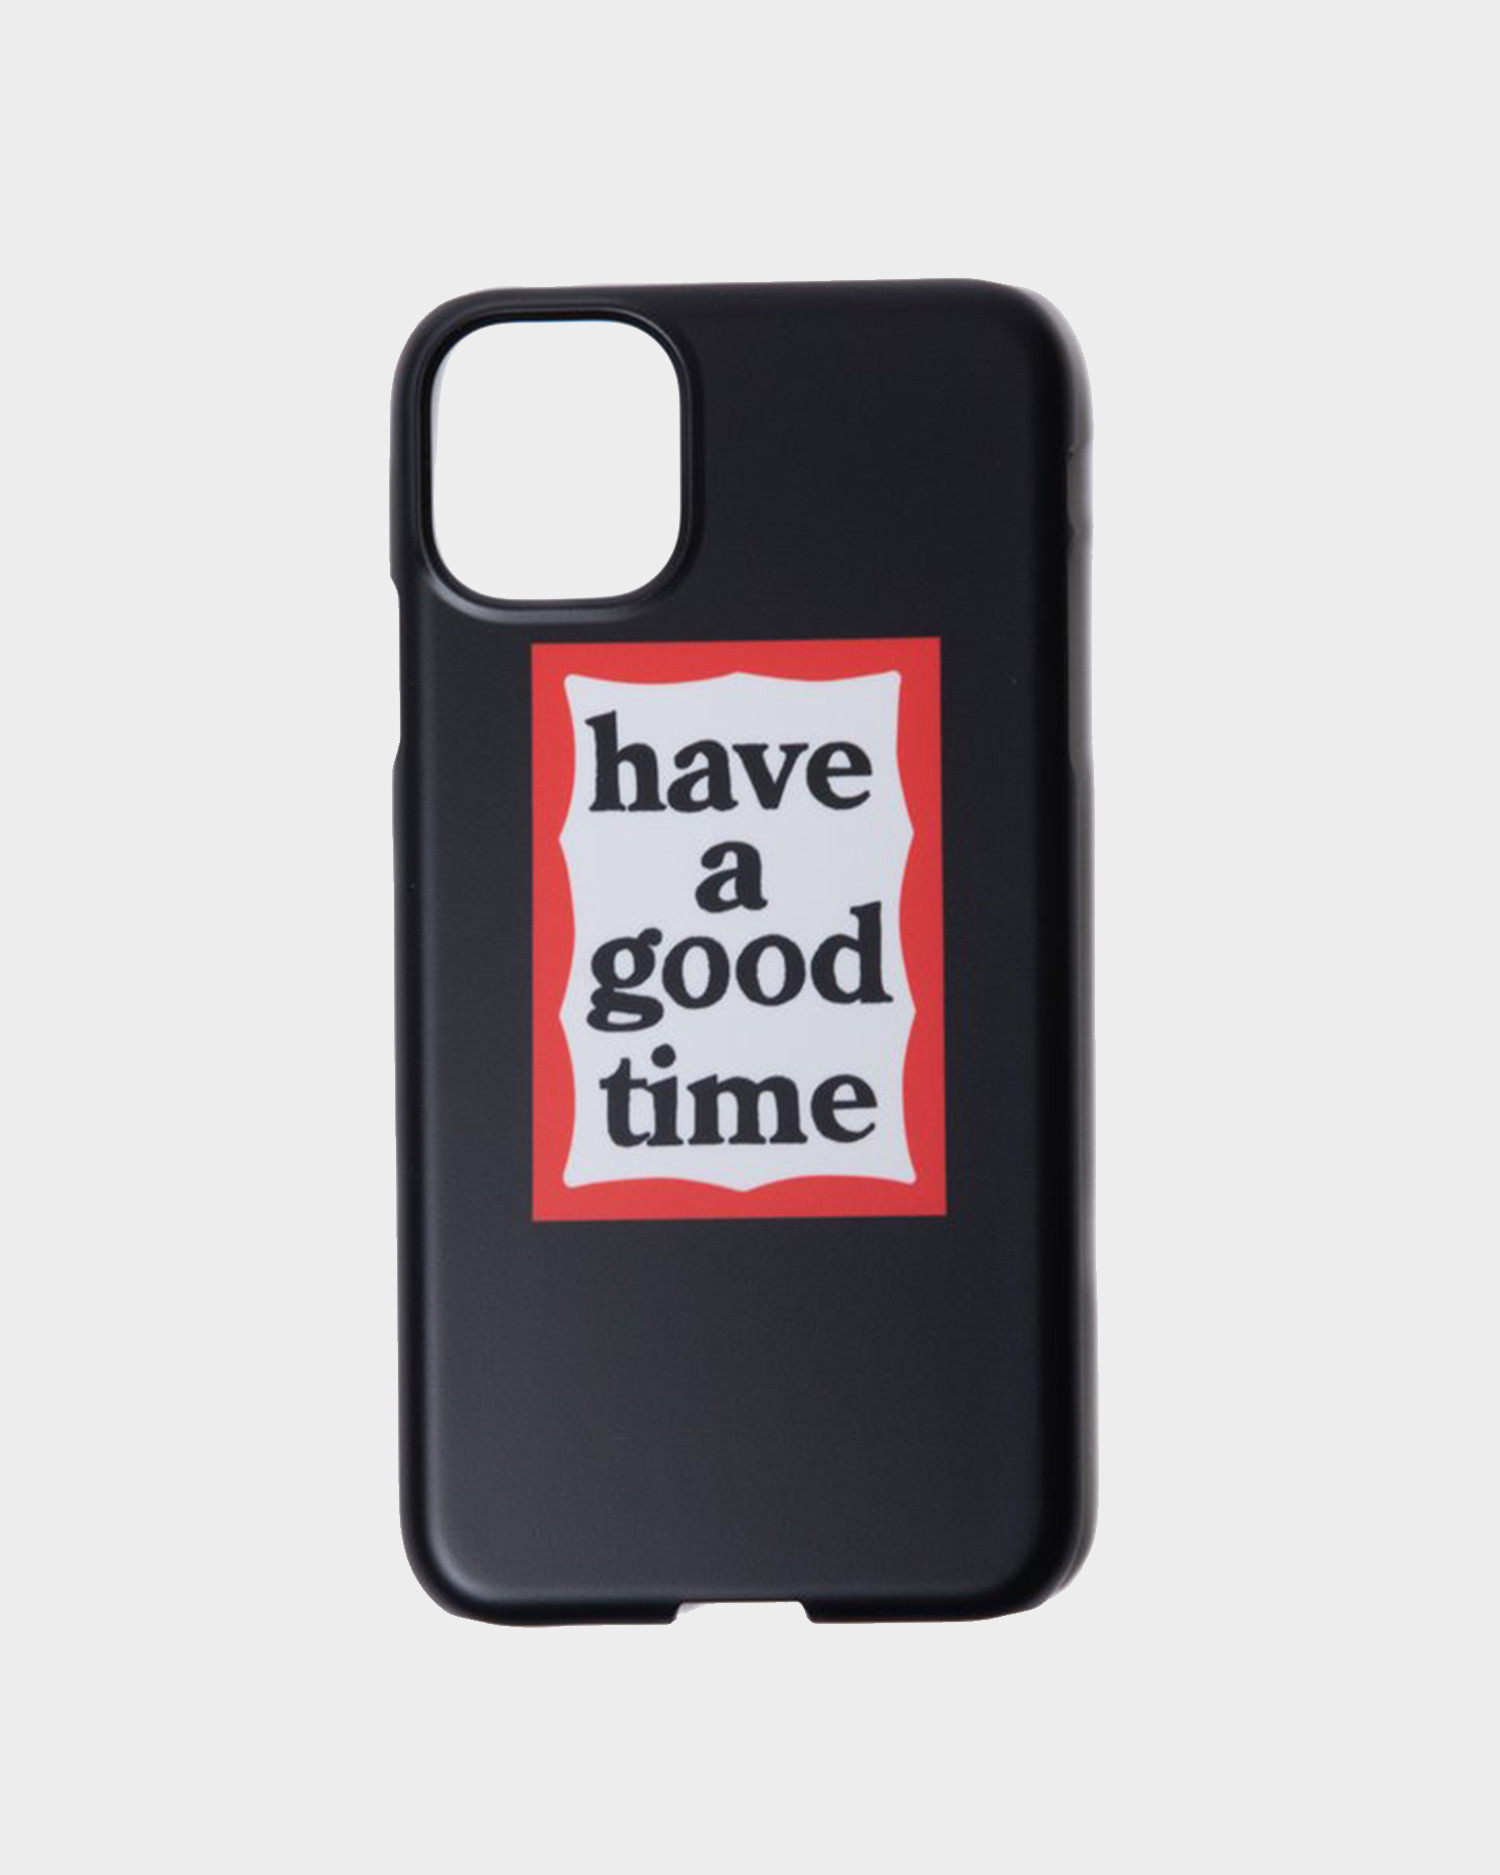 Have A Good Time Iphone case 11 Black